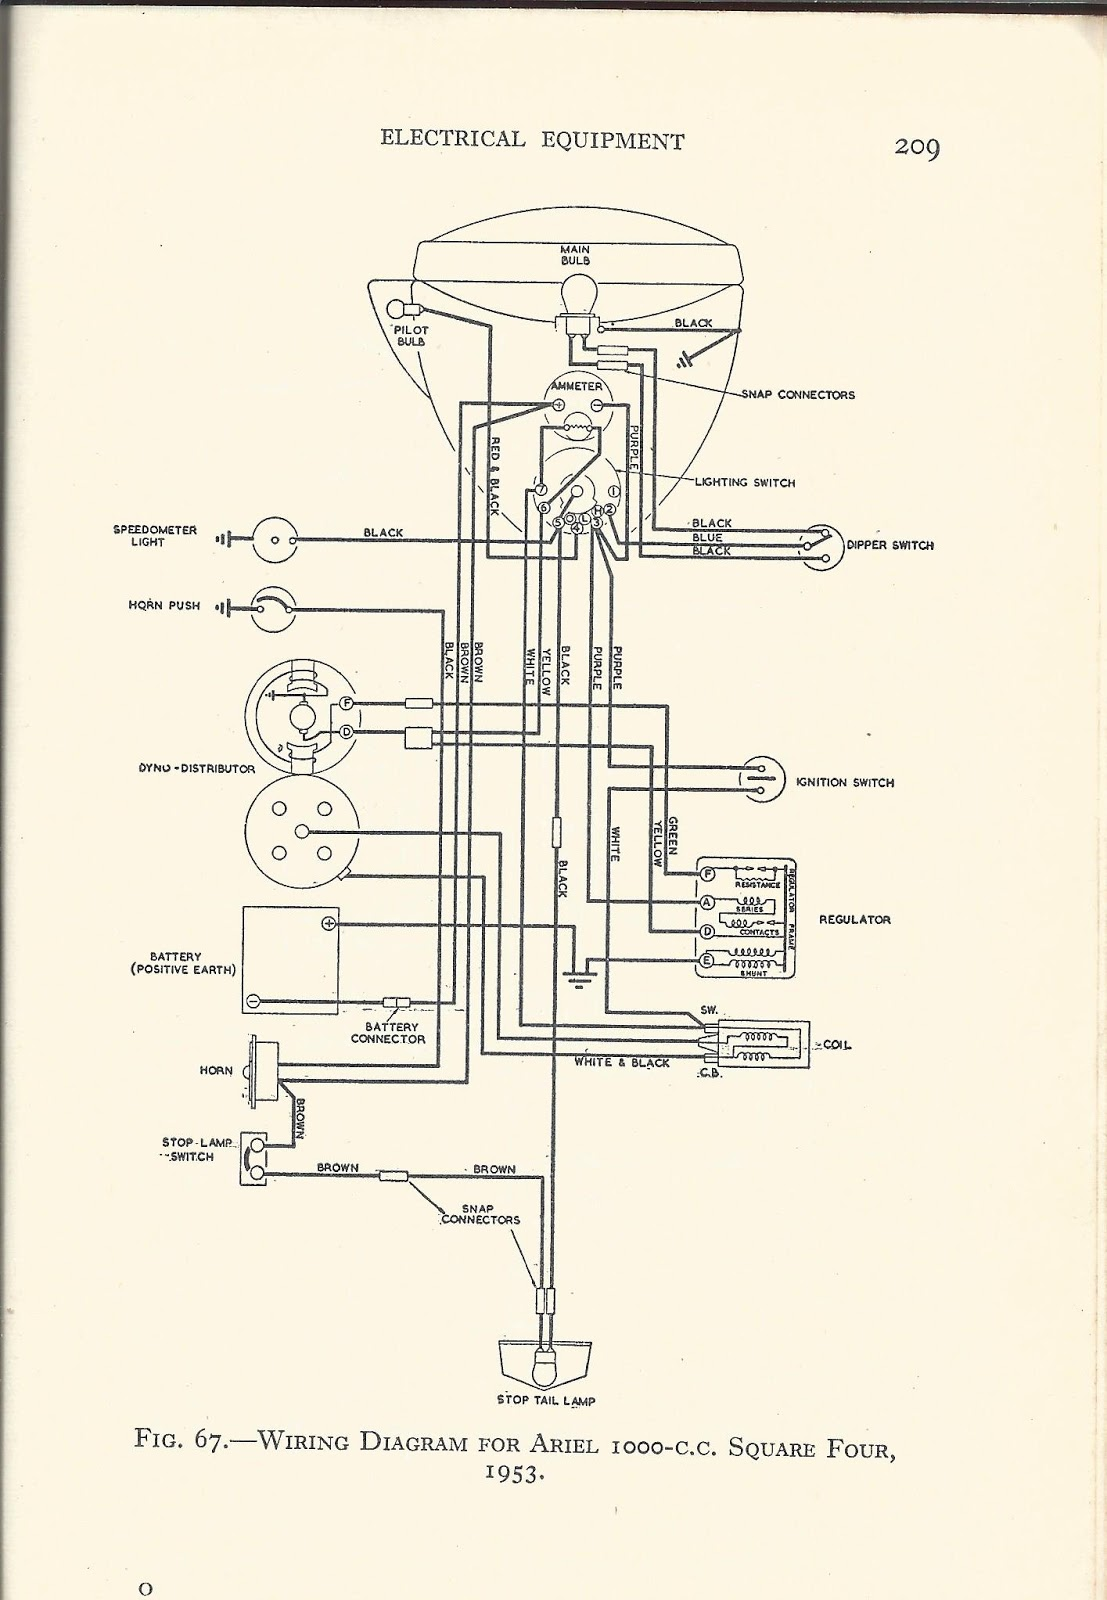 Rex Controller Wiring Diagram C10 Will Be A Thing 76 Chevy Amelia Squariel Motorcycle Rh Ariel Square Four Blogspot Com 1968 1977